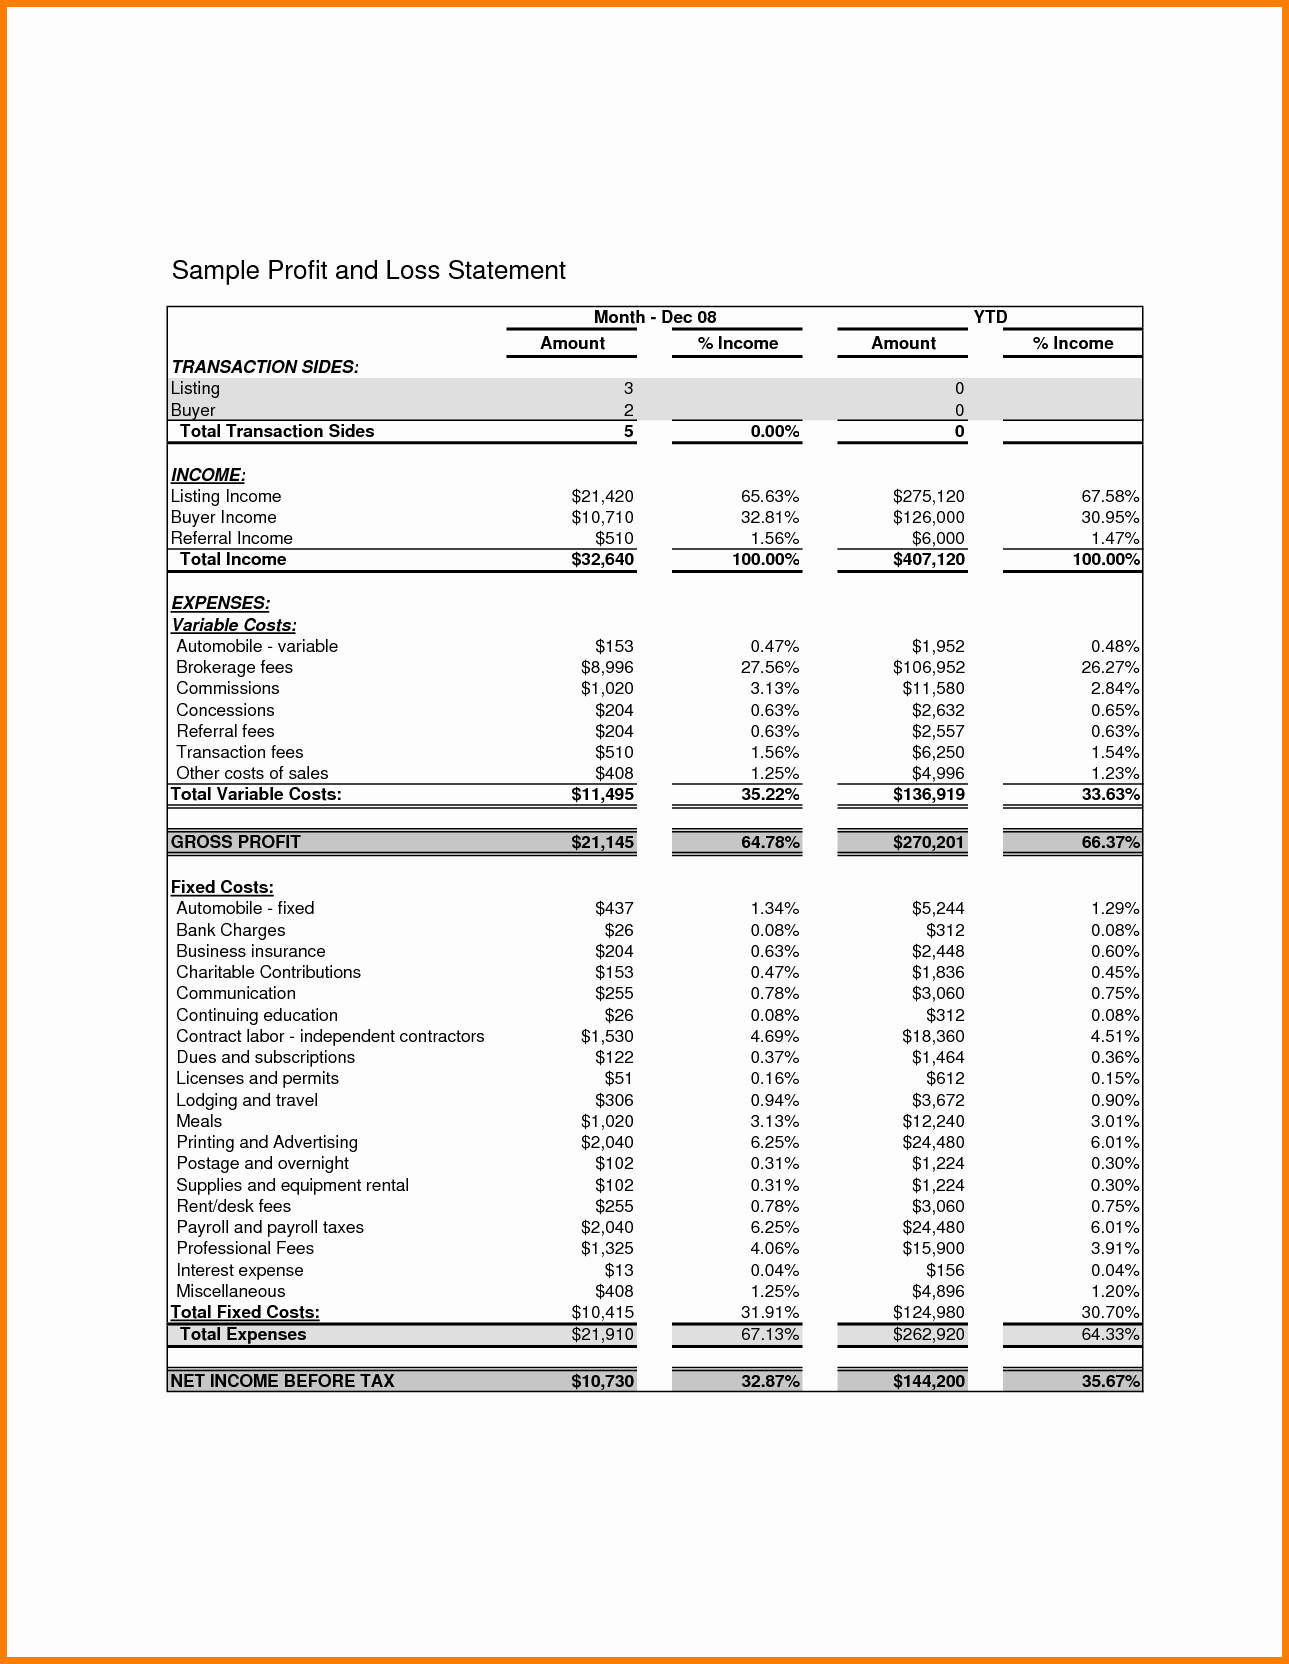 P and L Statement Template New Basic Profit and Loss Statement Mughals